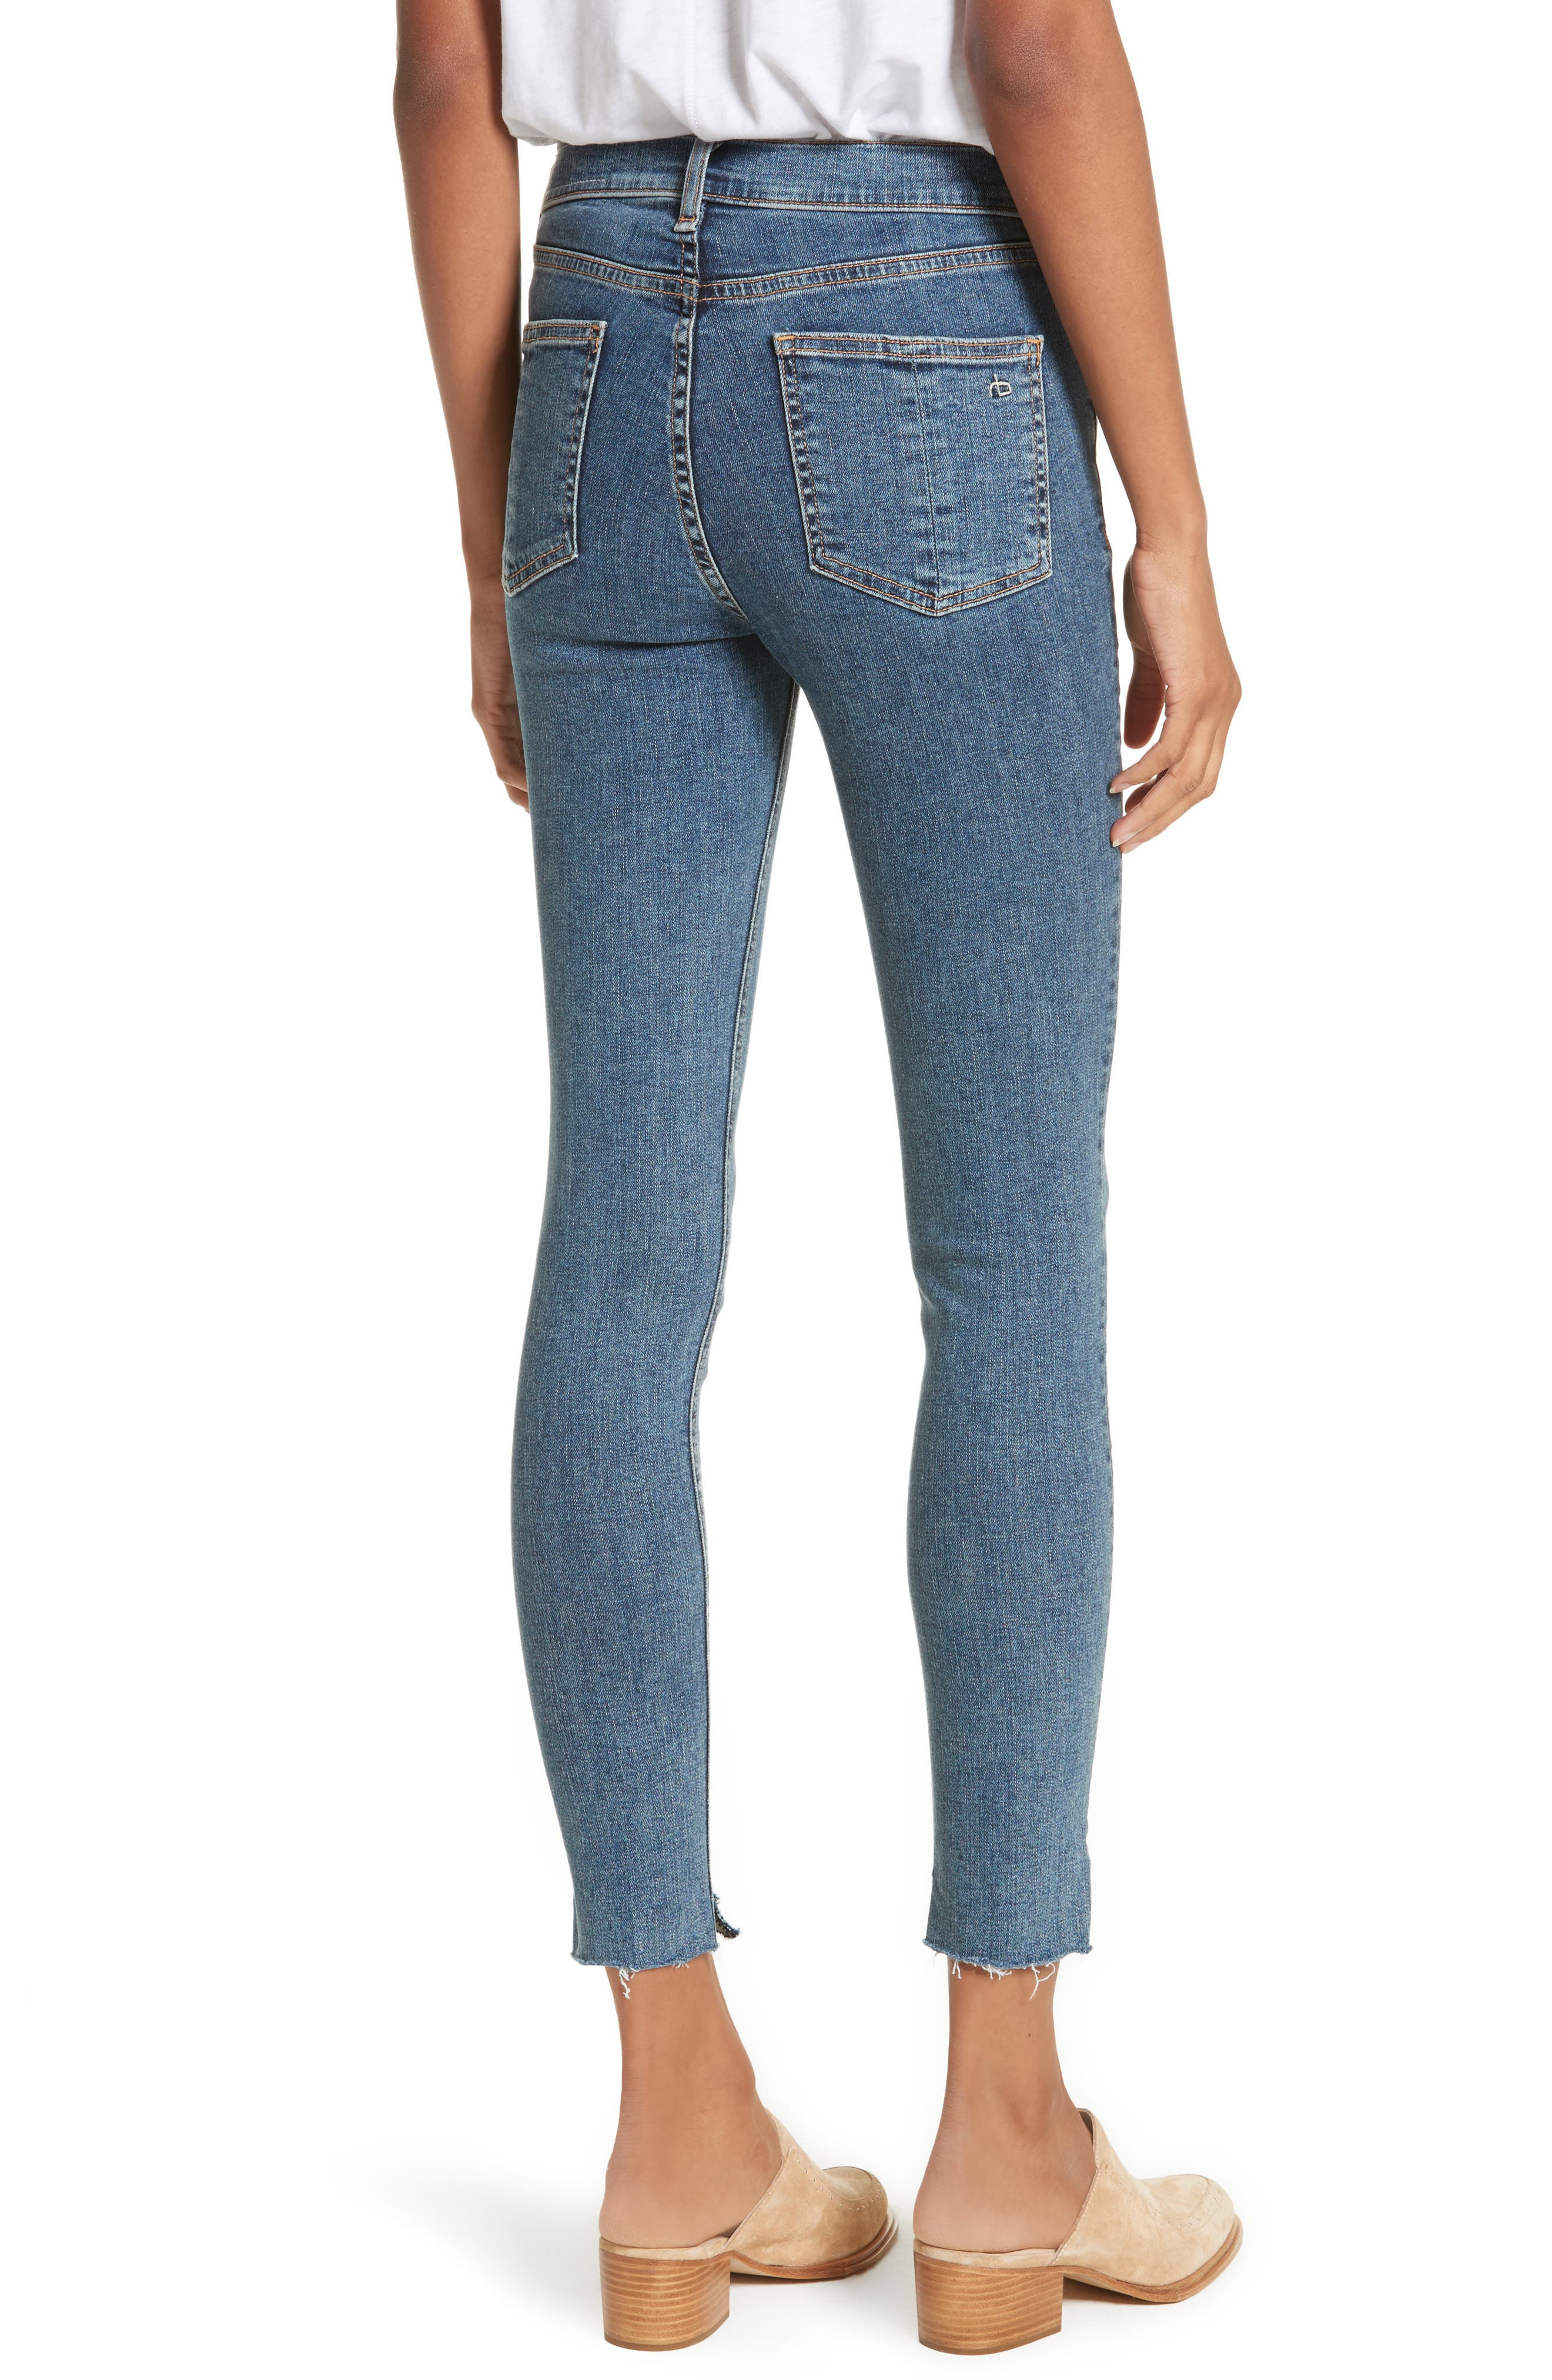 Alternate Image 2  - rag & bone/JEAN High Waist Ankle Skinny Jeans (Clean Commodore)